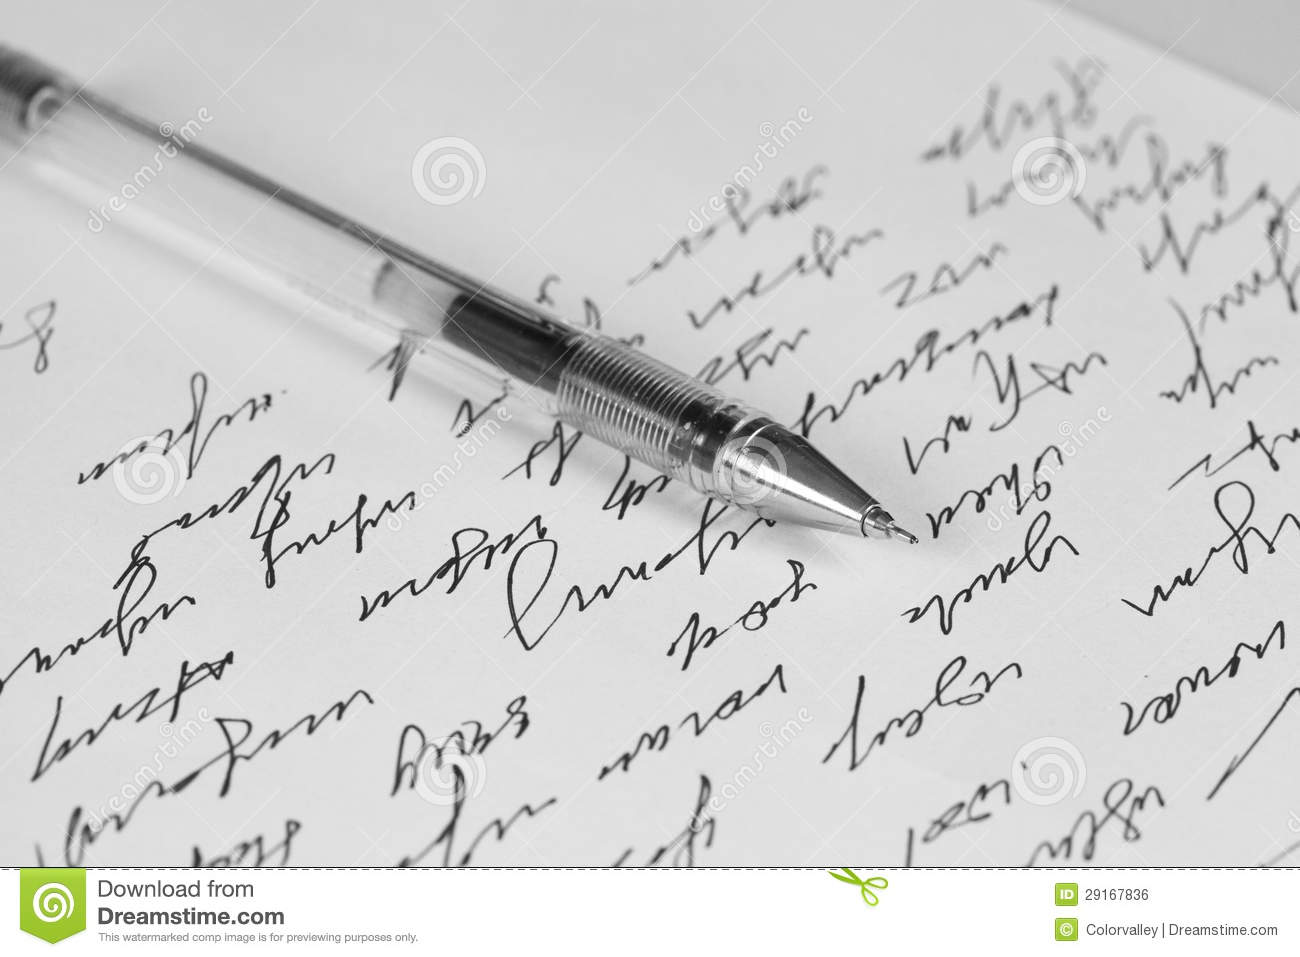 Stock illustrations senior citizen lady with a sign stock clipart - Handwriting Letter Royalty Free Stock Image Image 29167836